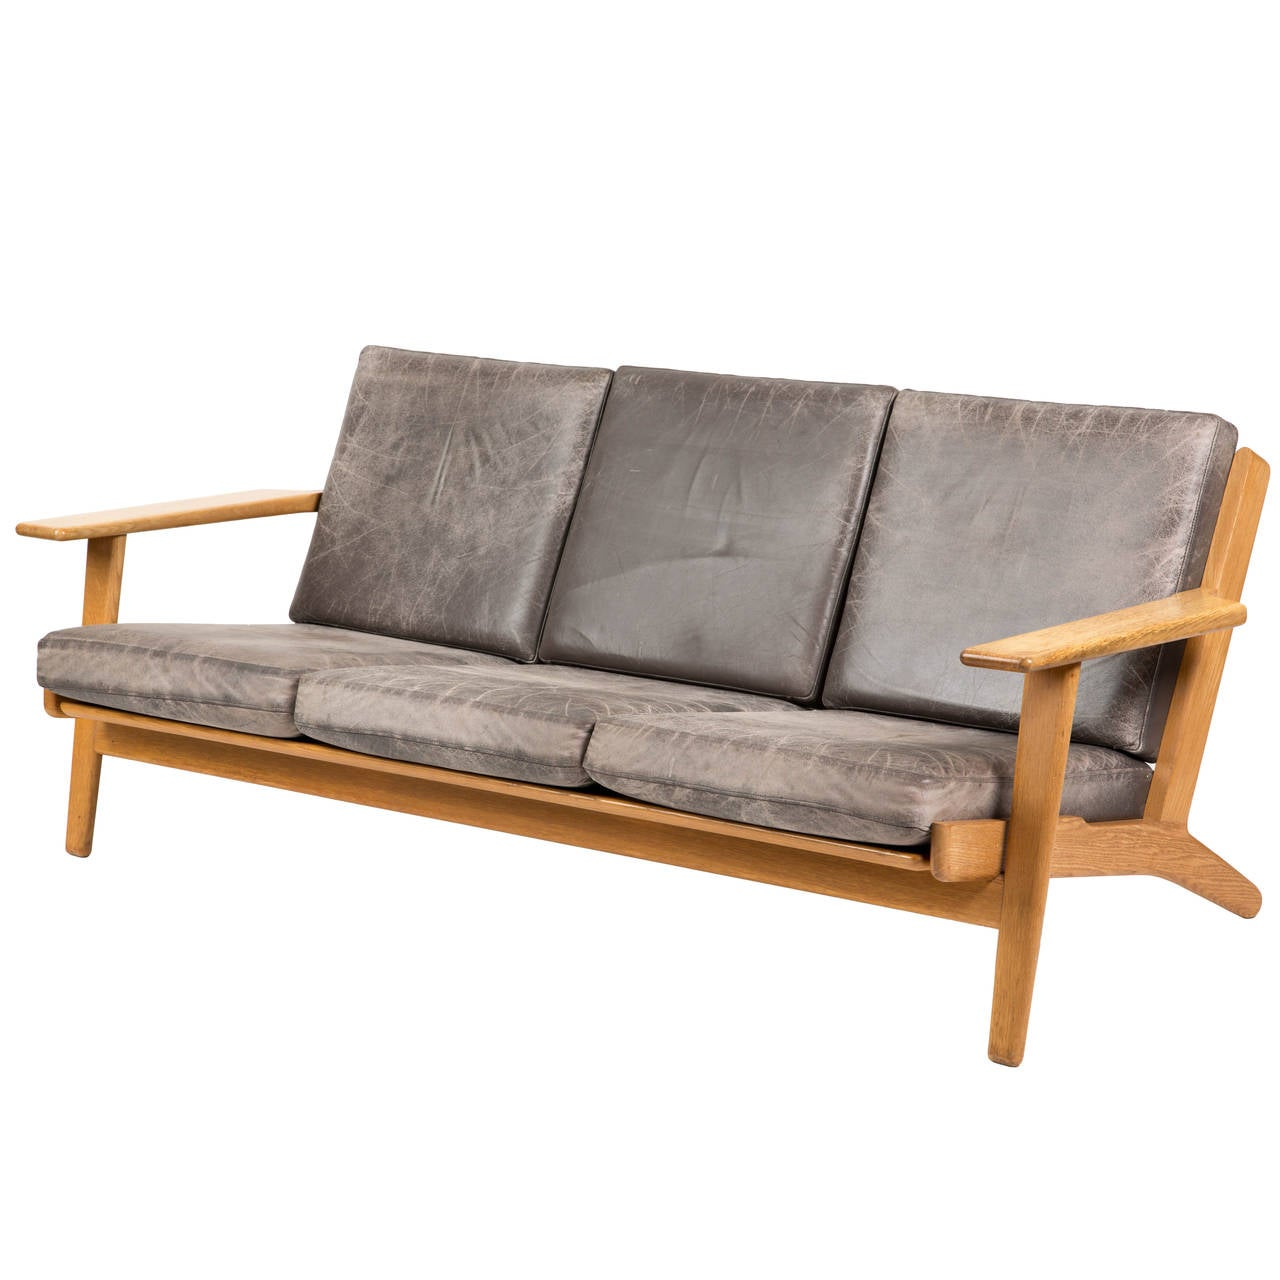 hans wegner getama sofa leather at 1stdibs. Black Bedroom Furniture Sets. Home Design Ideas